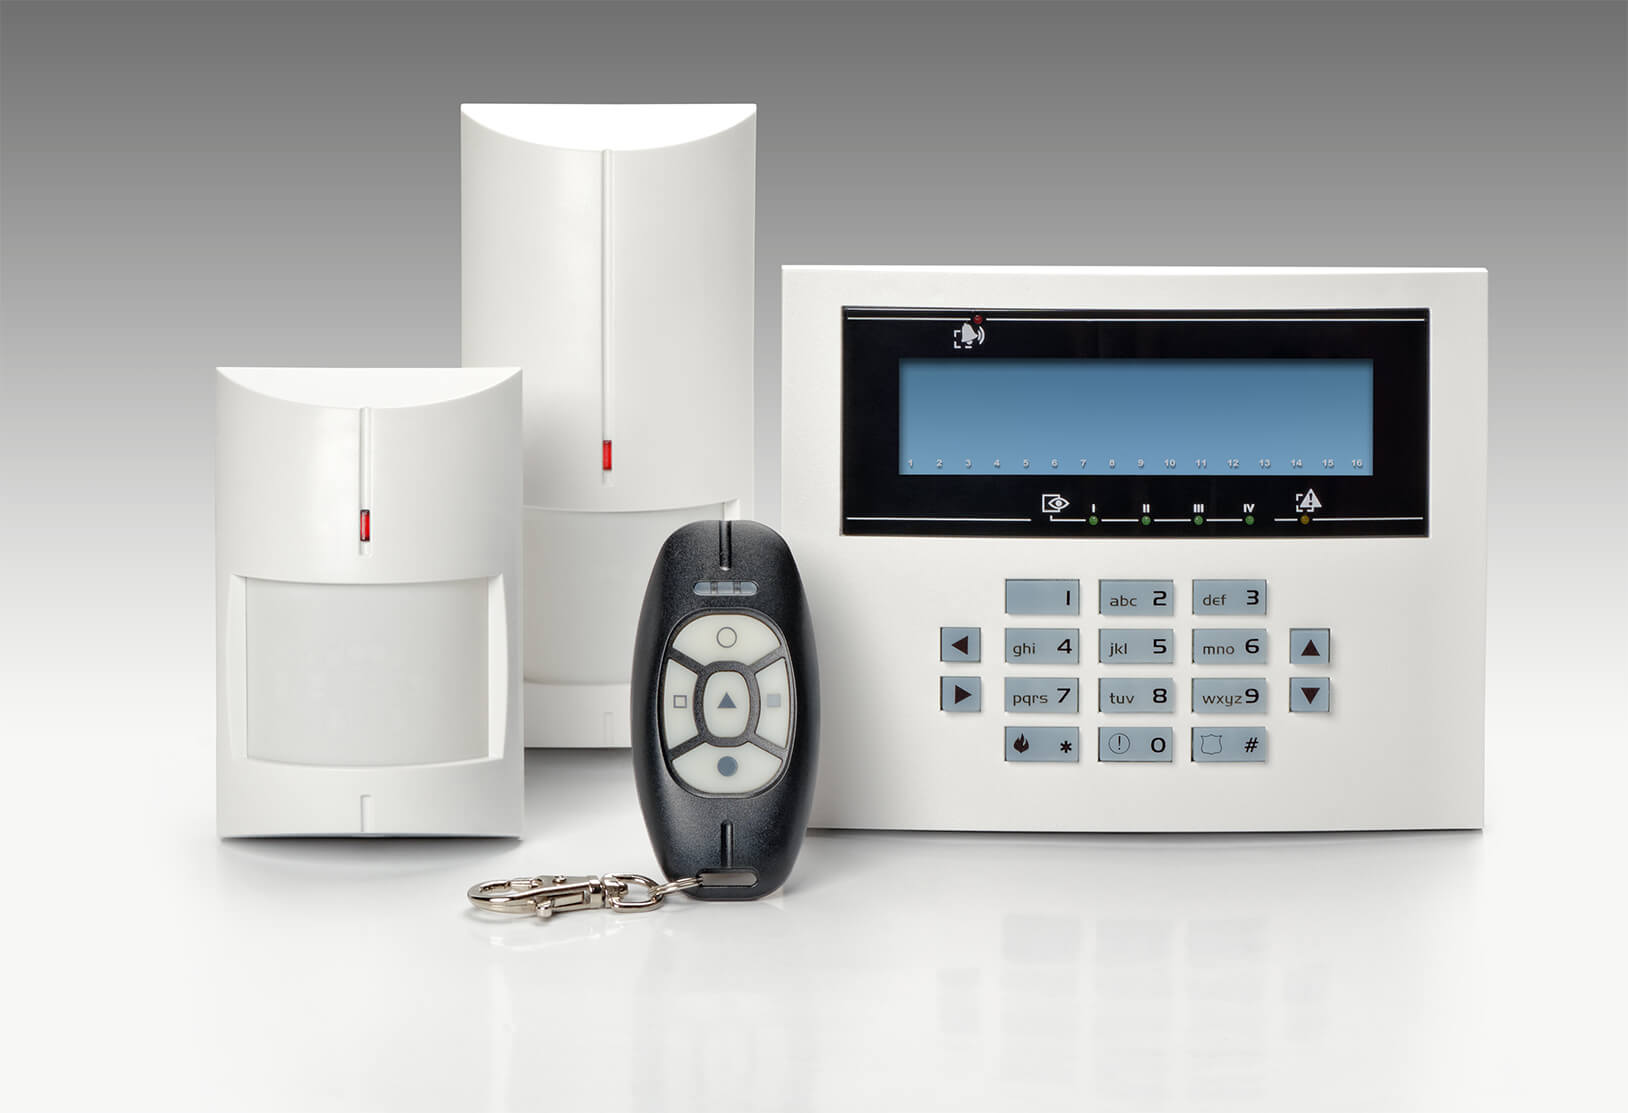 Commercial Burglar Alarms For Business in Lewisham SE16  - Local Lewisham SE16 burglar alarm company.Call 02078872244 - Dedicated to Safety & Security. Companies, shops and homes ..